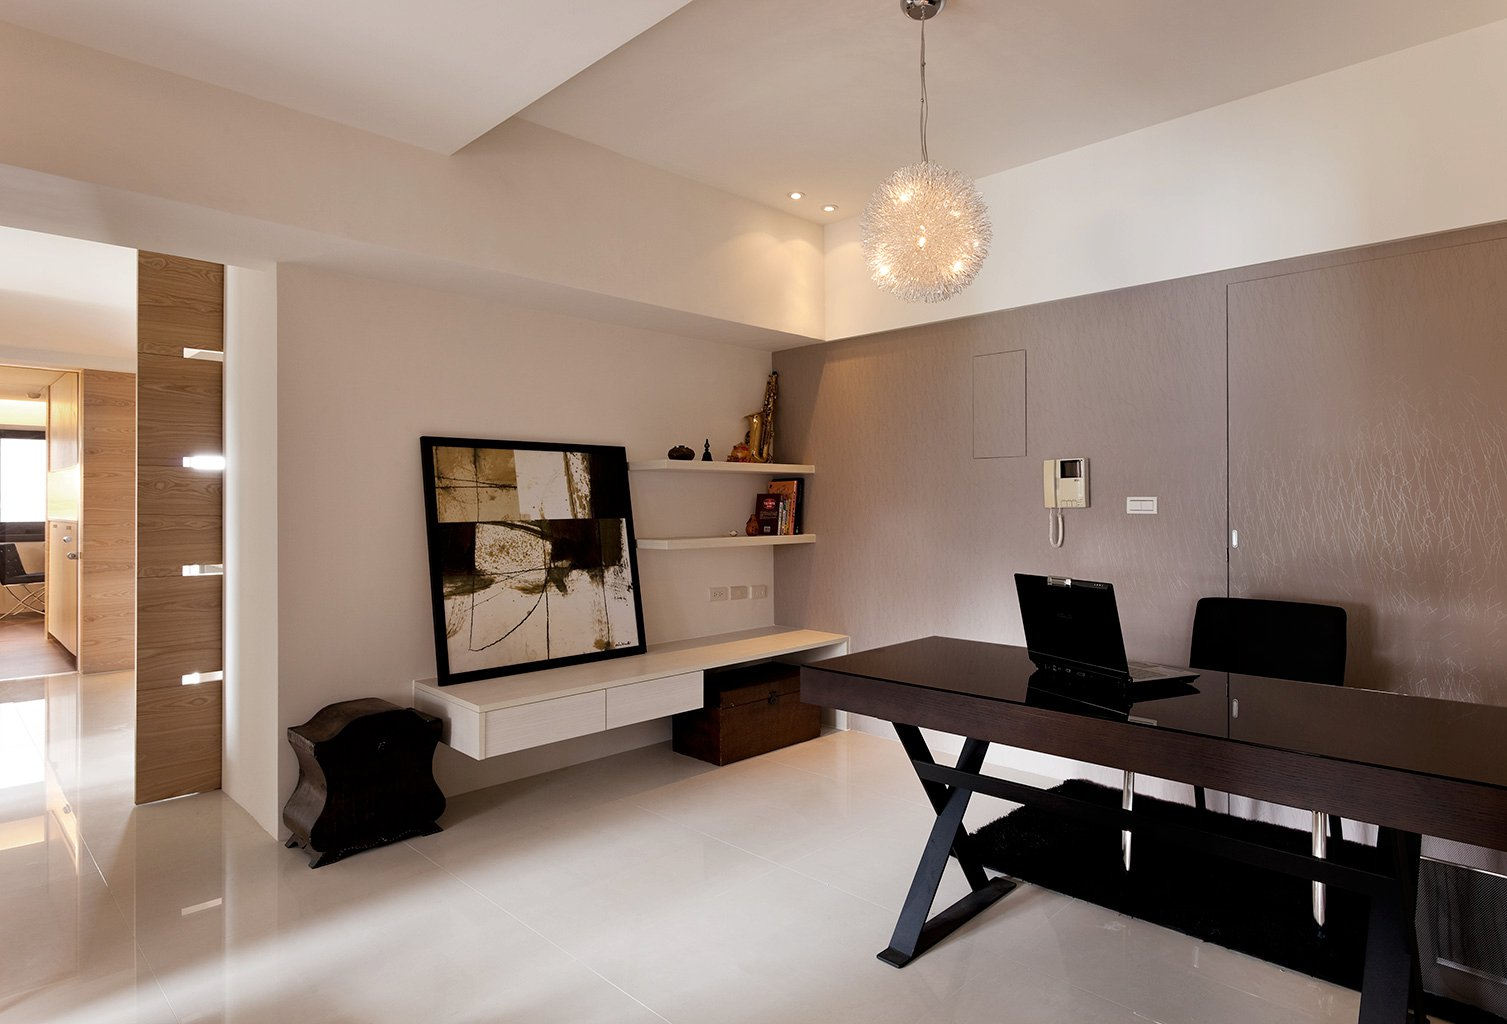 Interior Design Ideas For Home Office: Modern Minimalist Decor With A Homey Flow